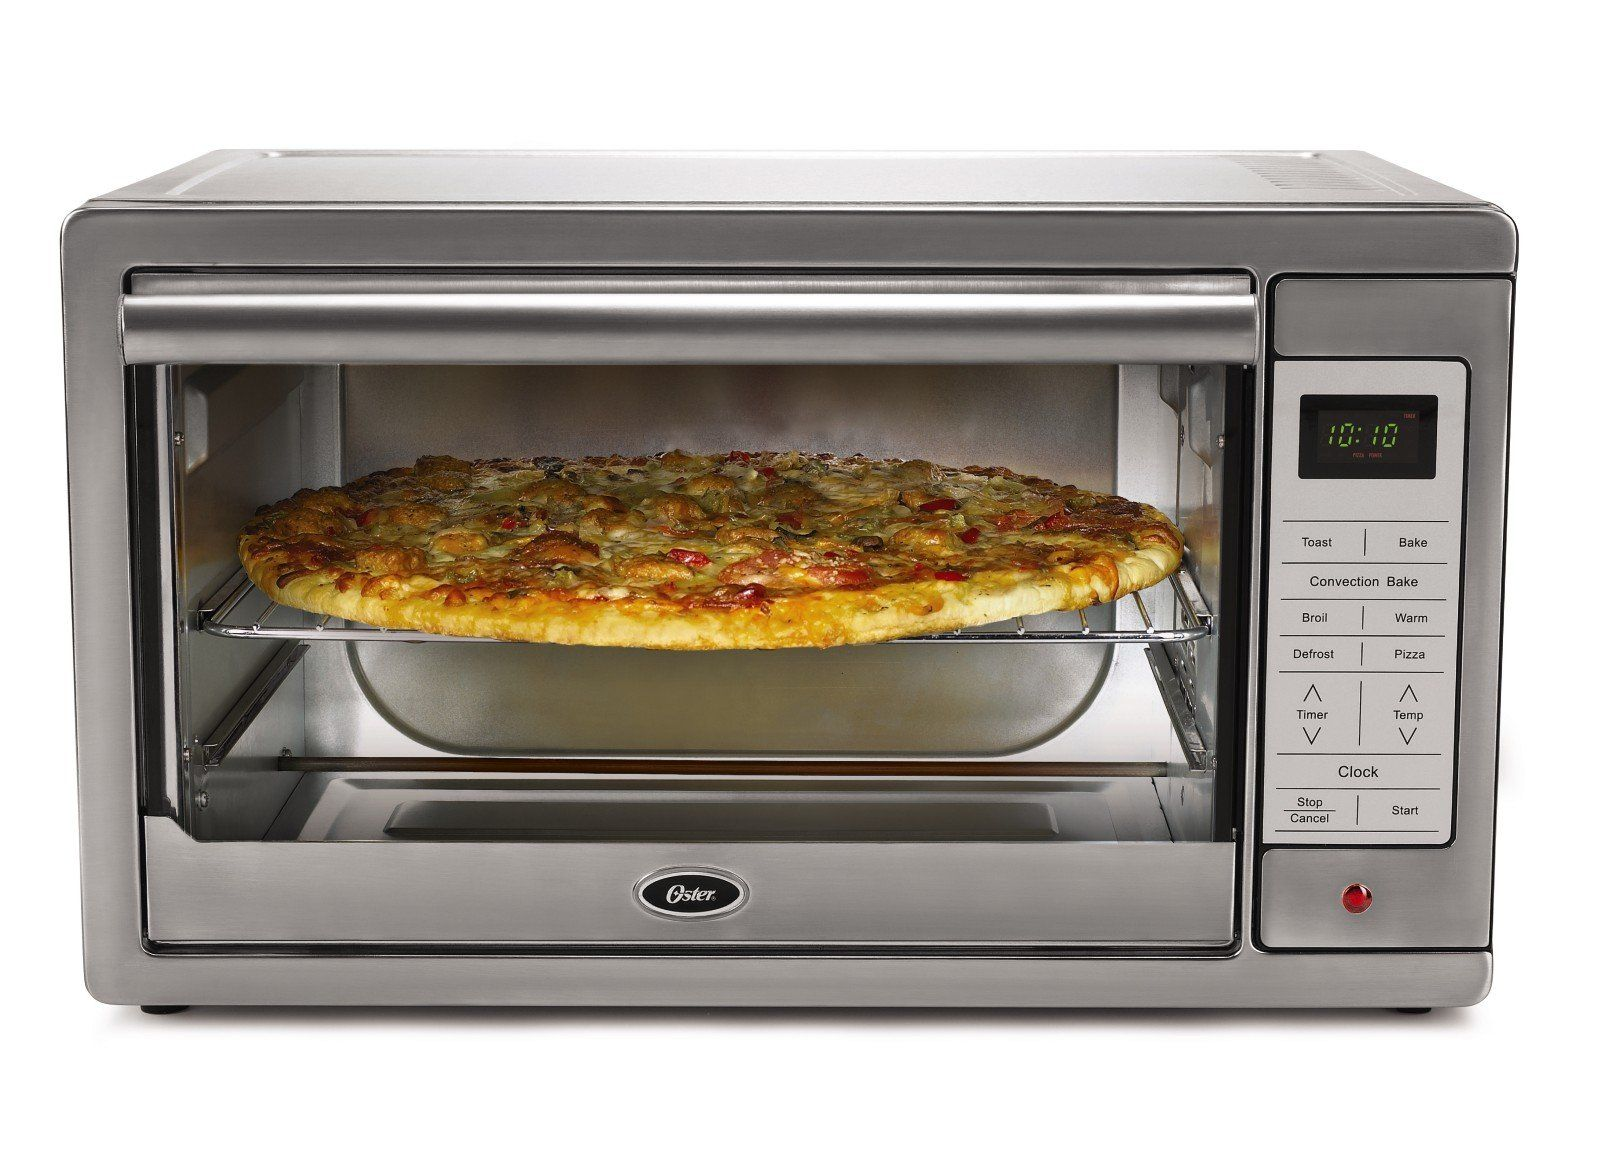 Countertop Oven Commercial Convection Stainless Steel Toaster Pizza Extra Large